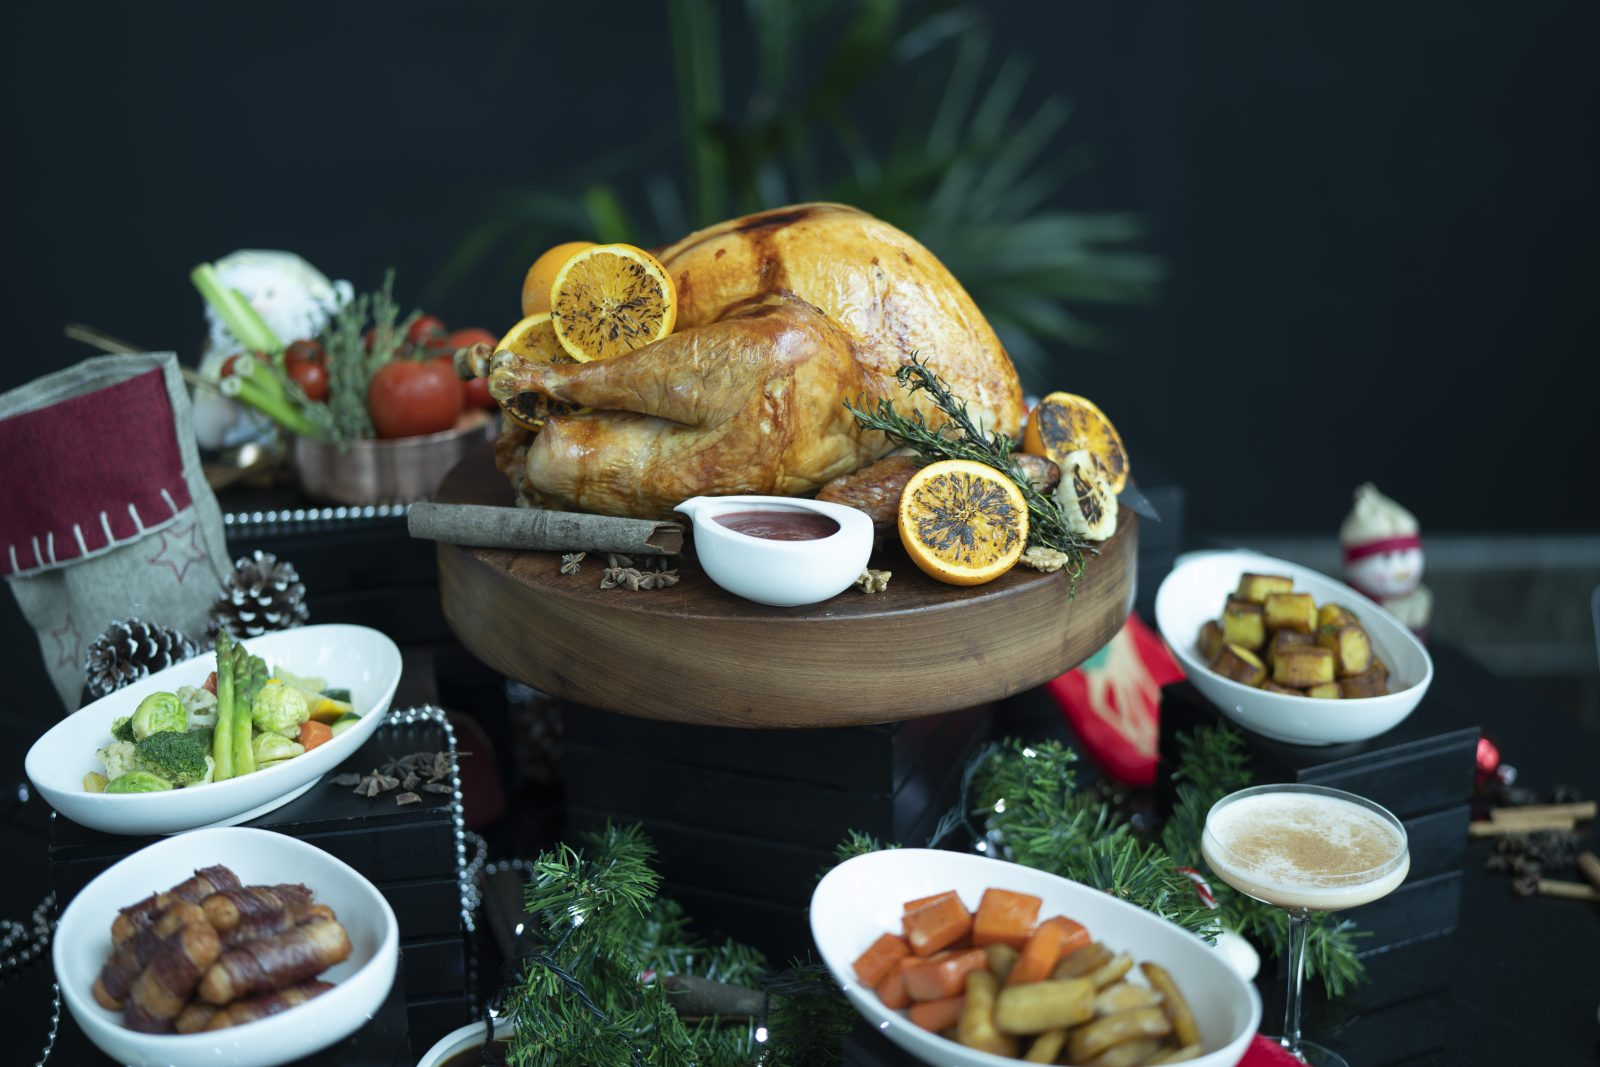 La Farine Café & Bakery Christmas Turkey